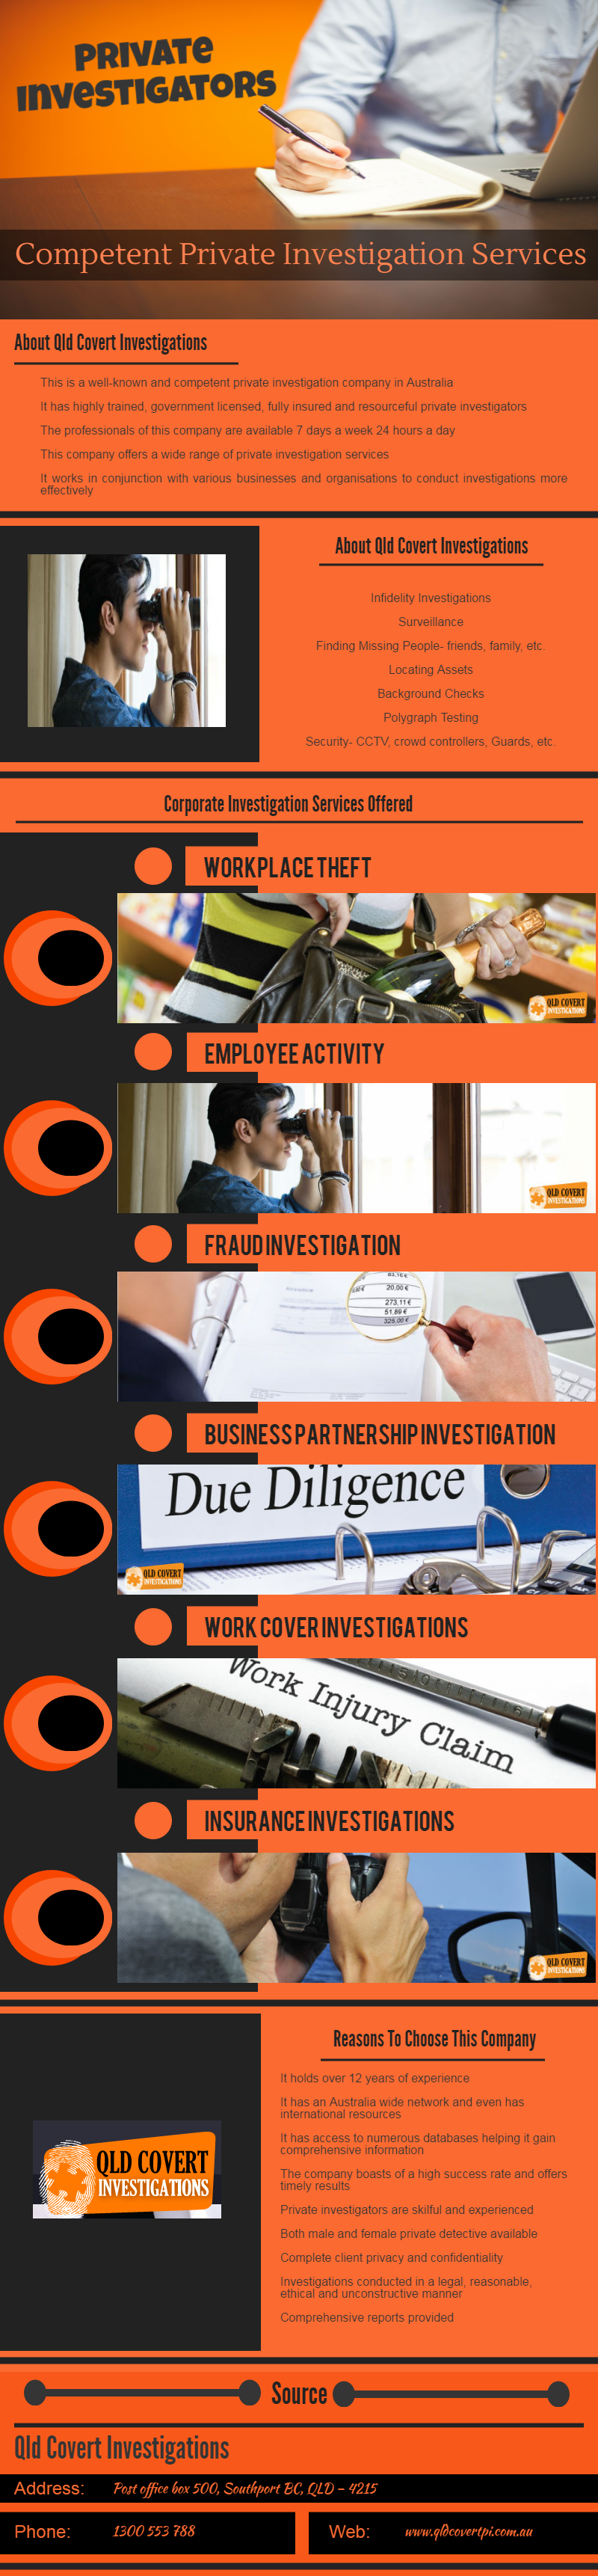 Competent Private Investigation Services Qld Covert